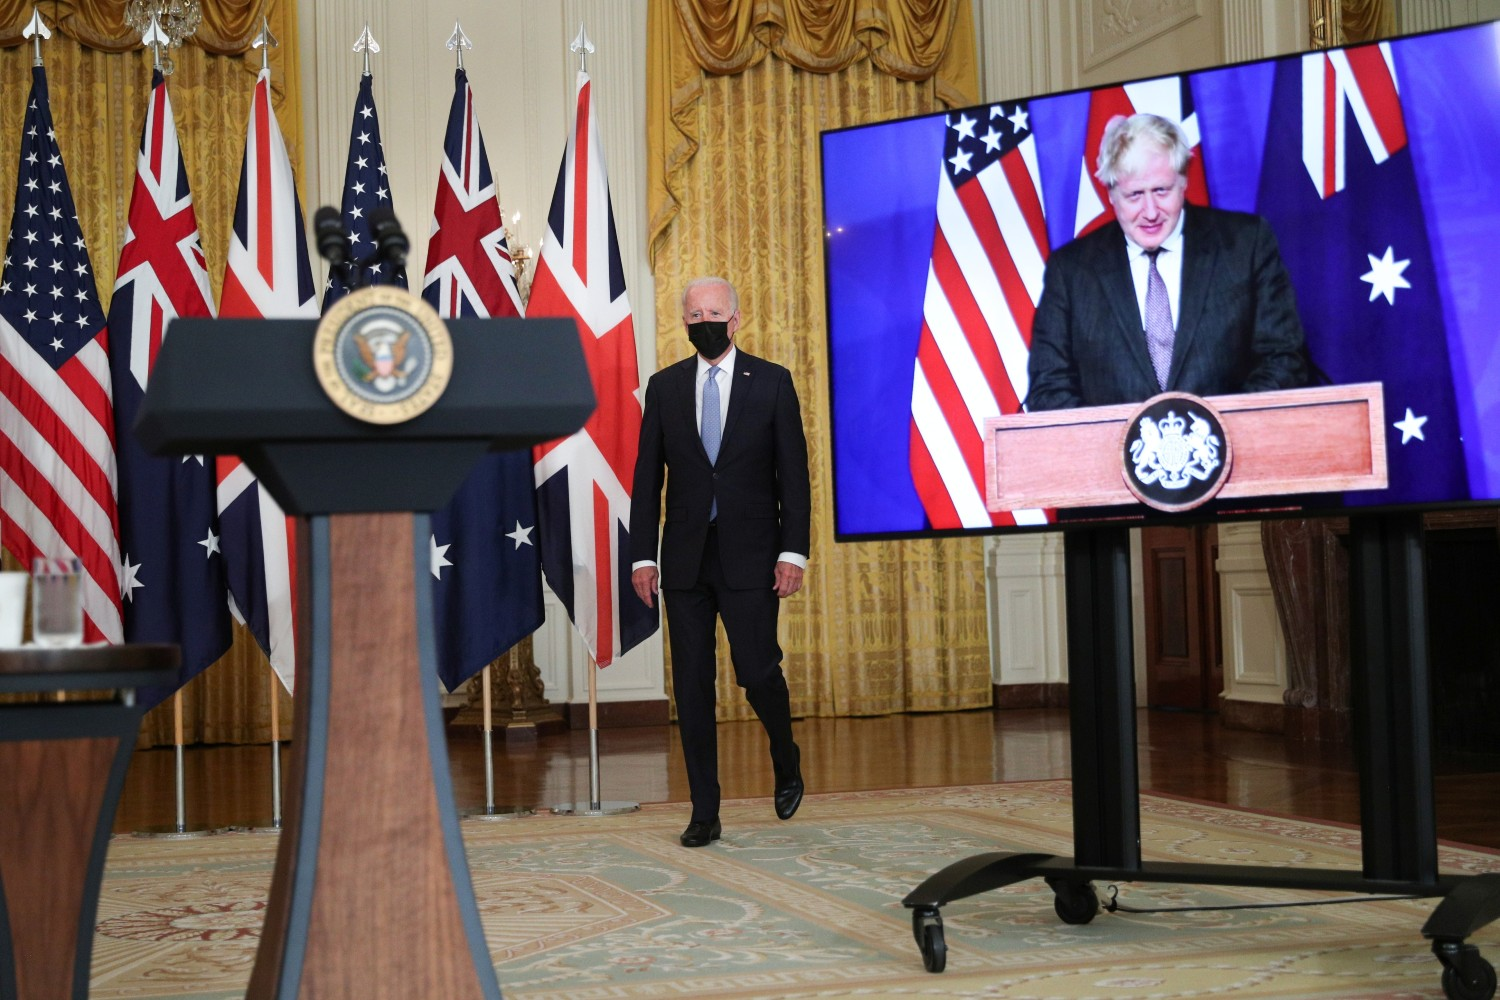 U.S. President Joe Biden walks to the podium before his remarks on a National Security Initiative virtually with Australian Prime Minister Scott Morrison and British Prime Minister Boris Johnson, inside the East Room at the White House in Washington, U.S., September 15, 2021. Reuters/Tom Brenner